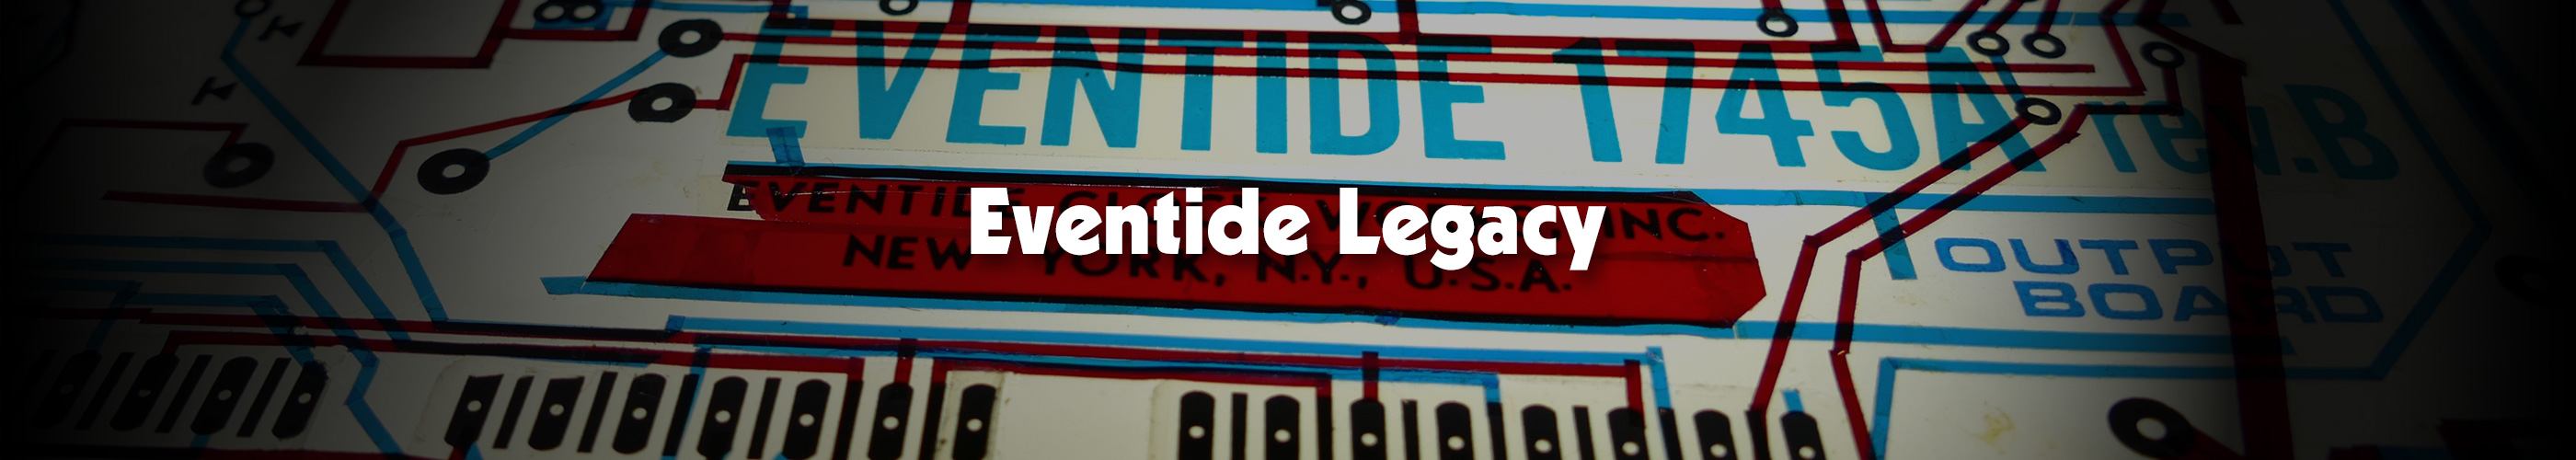 Eventide Legacy Products